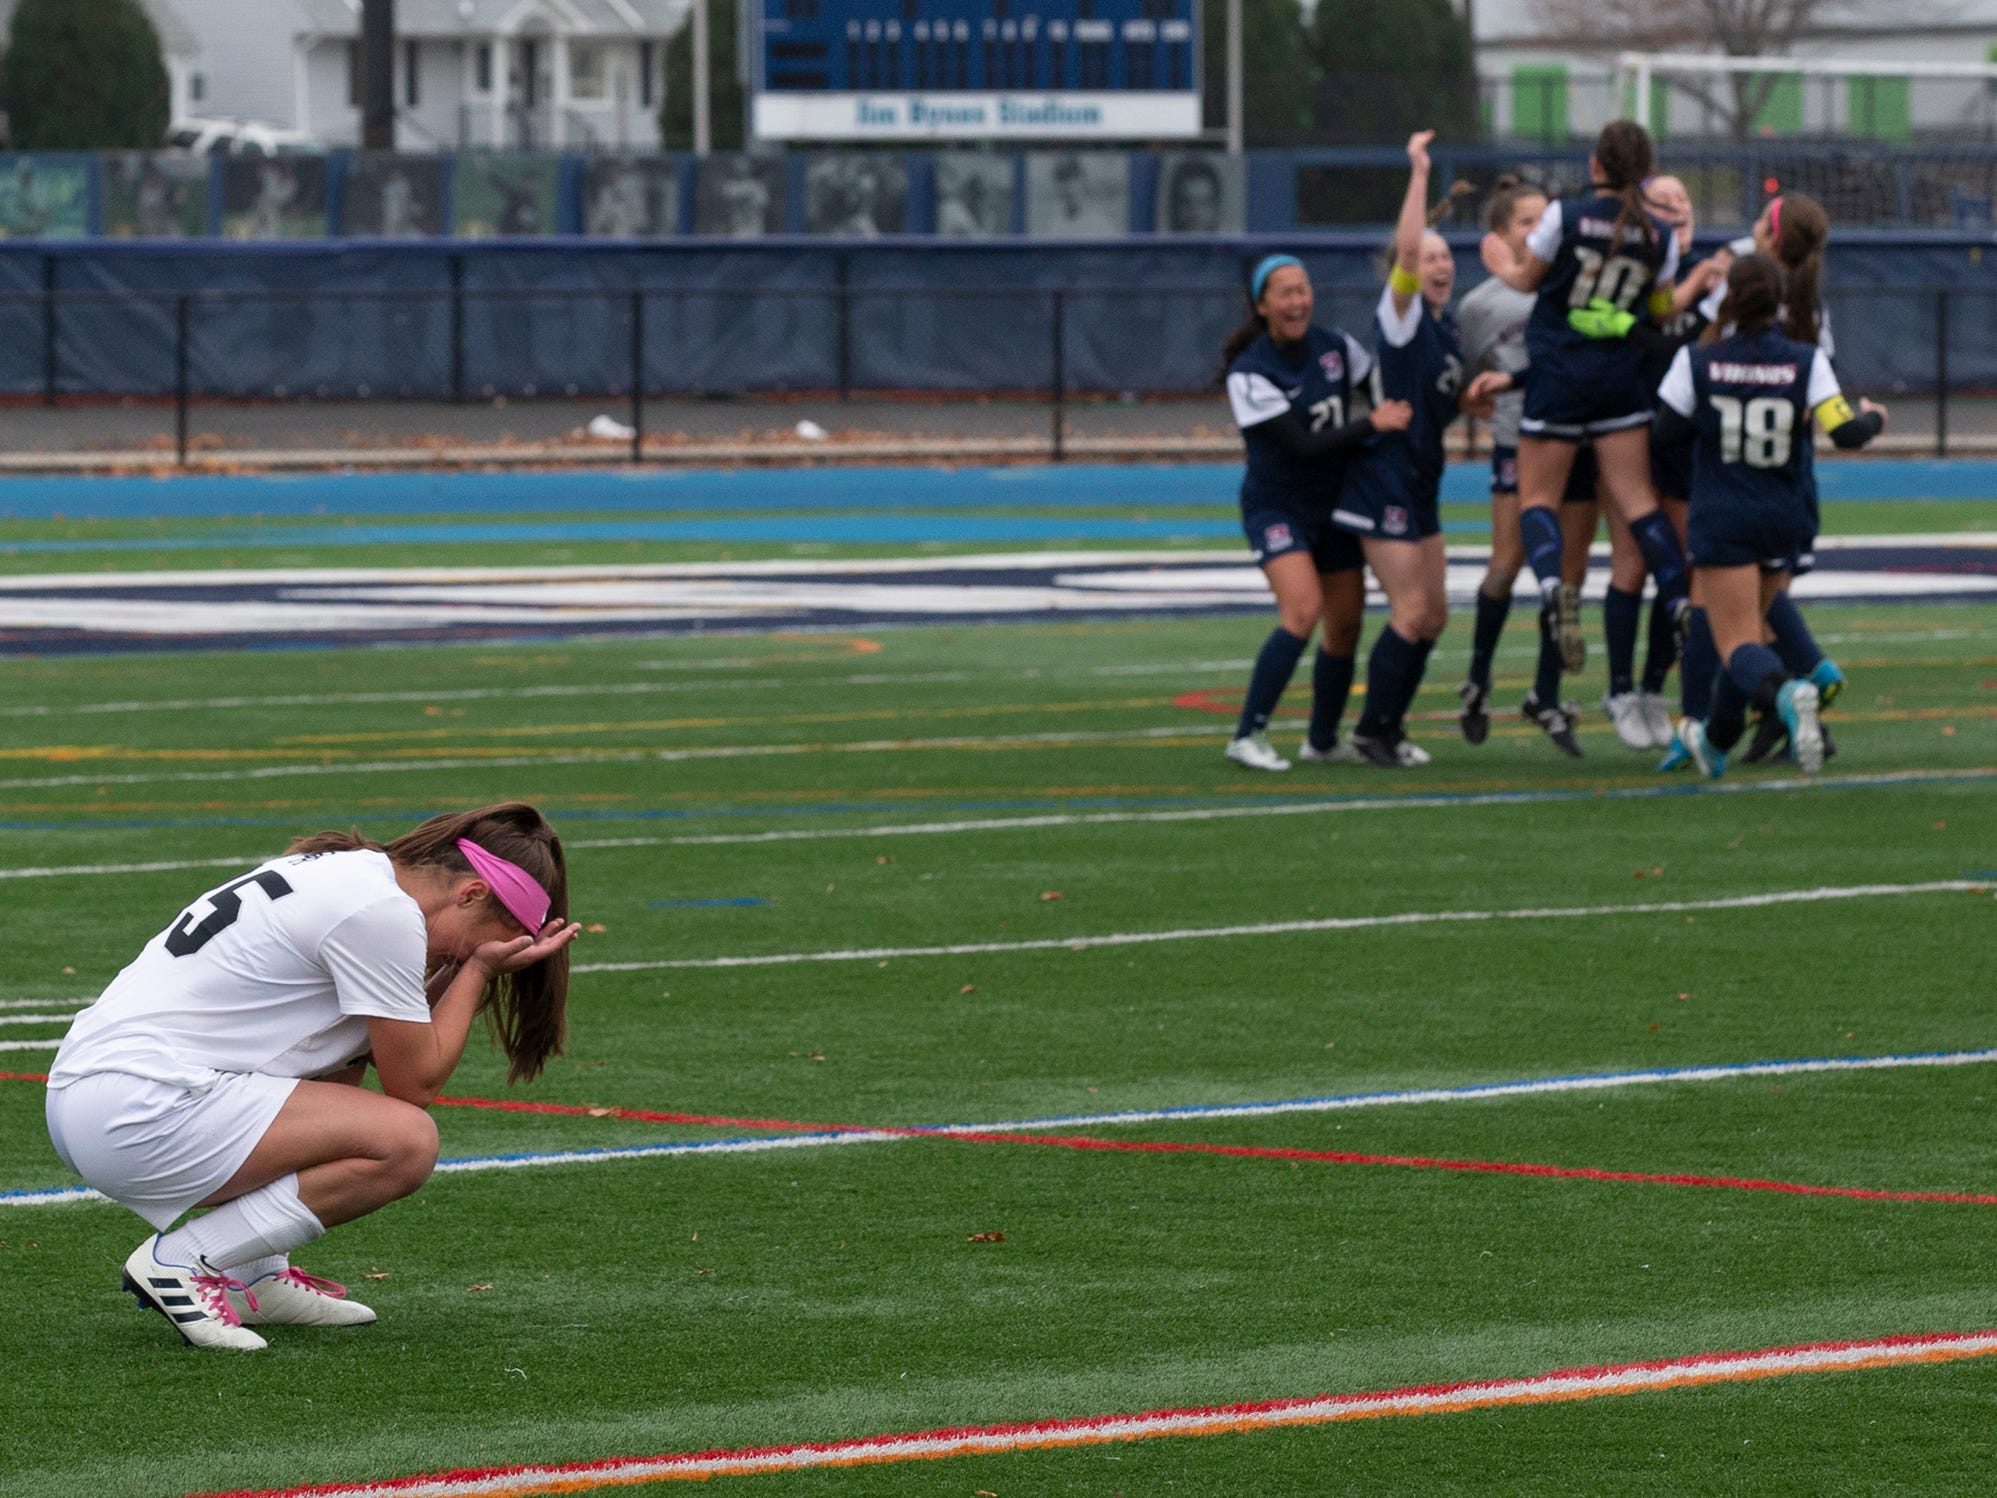 Bridgewater-Raritan's Allison Lowrey tries to accept heartbreaking 1-0 loss to Eastern as they celebrate at midfield. Bridgewater-Raritan vs. Eastern girls soccer in the NJSIAA Group IV final at Kean University.